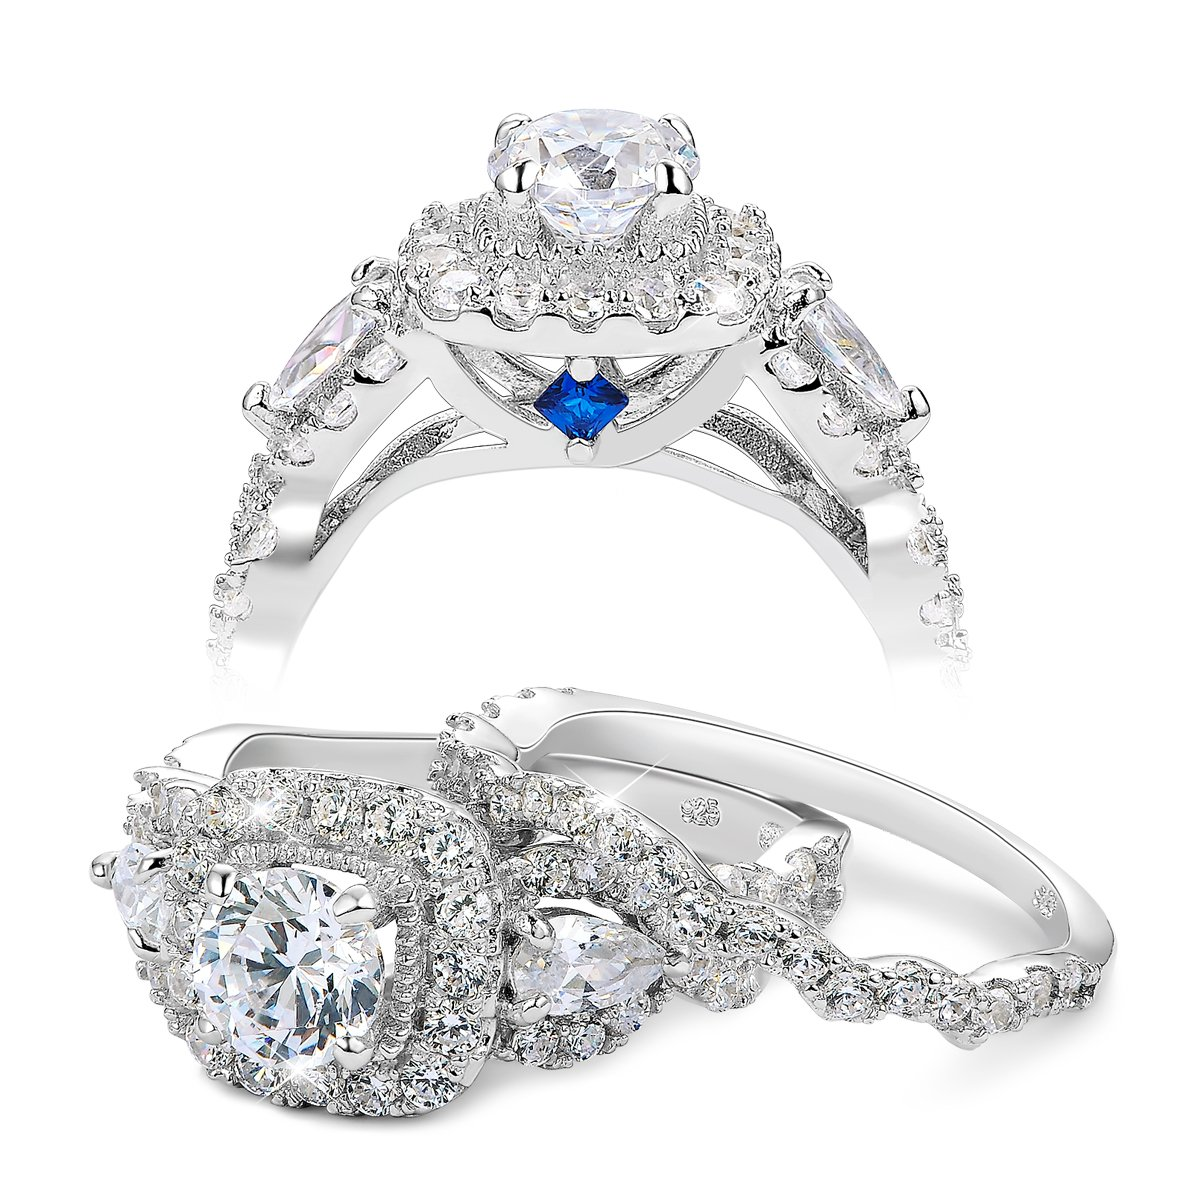 Newshe 2.4ct Round Pear White Cz 925 Sterling Silver Wedding Engagement Ring Set Bridal Size 5-10 Newshe Jewellery JR5249_SS